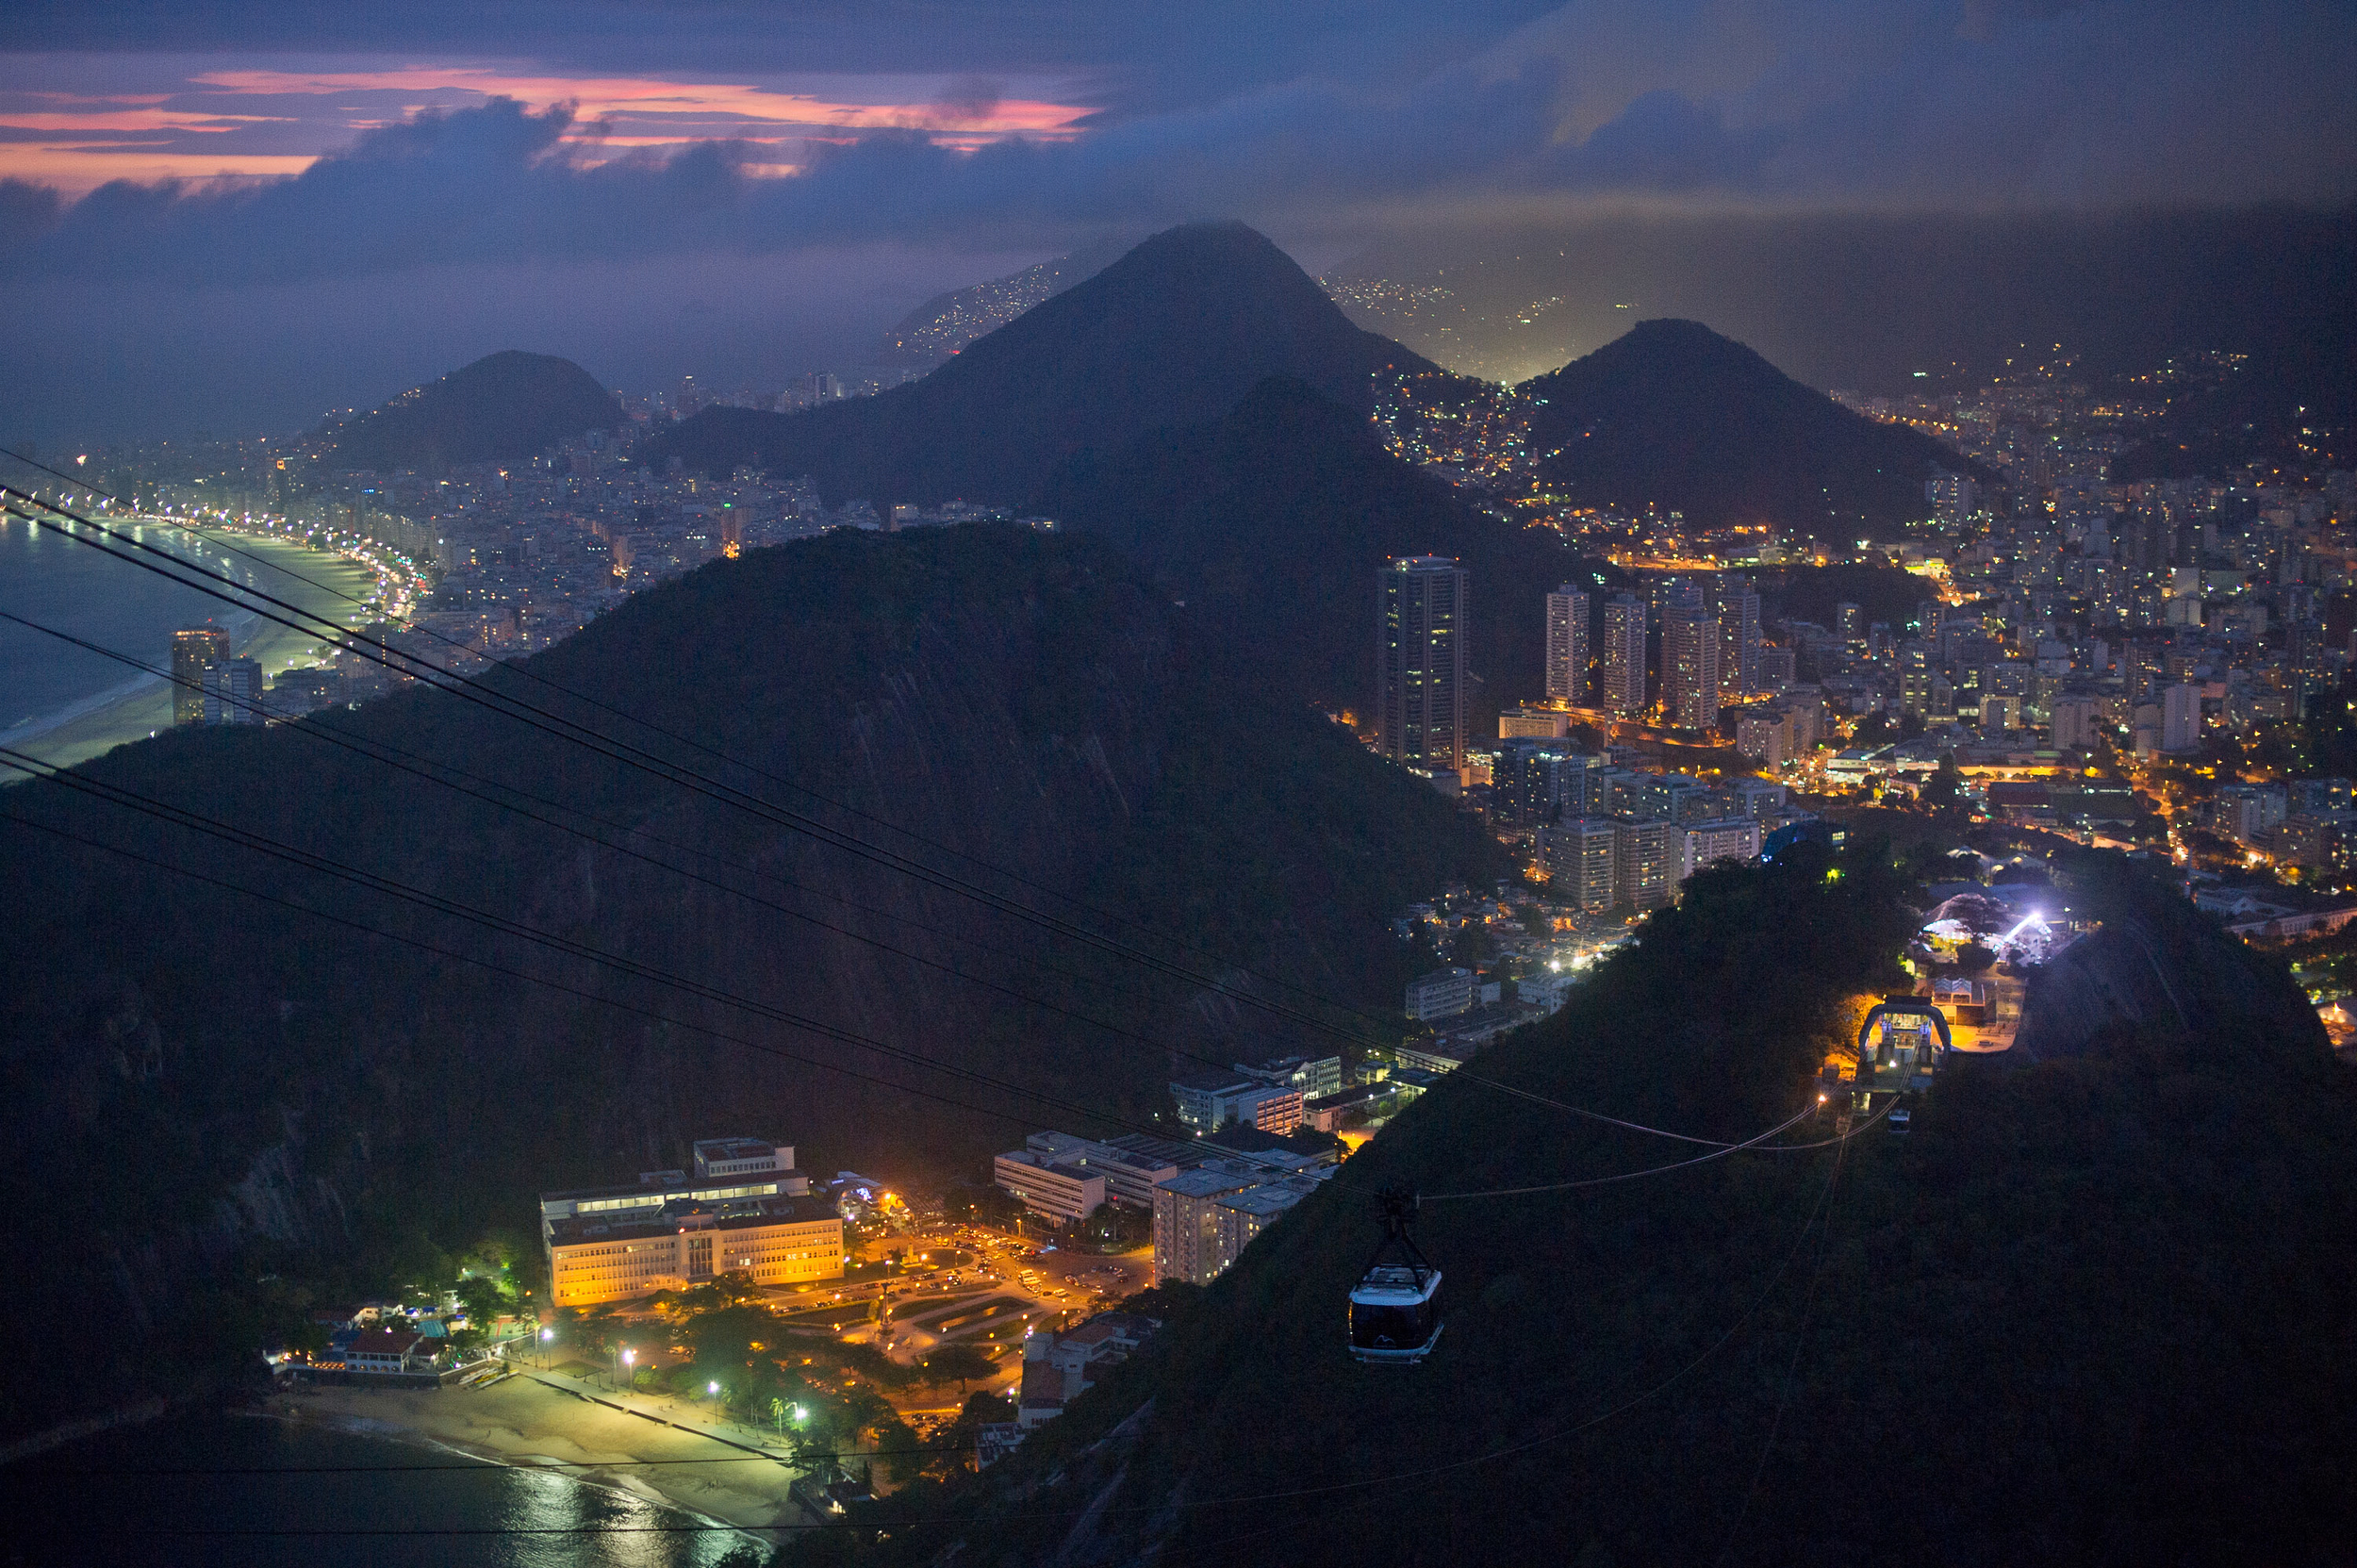 Rio de Janiero at Night.jpg